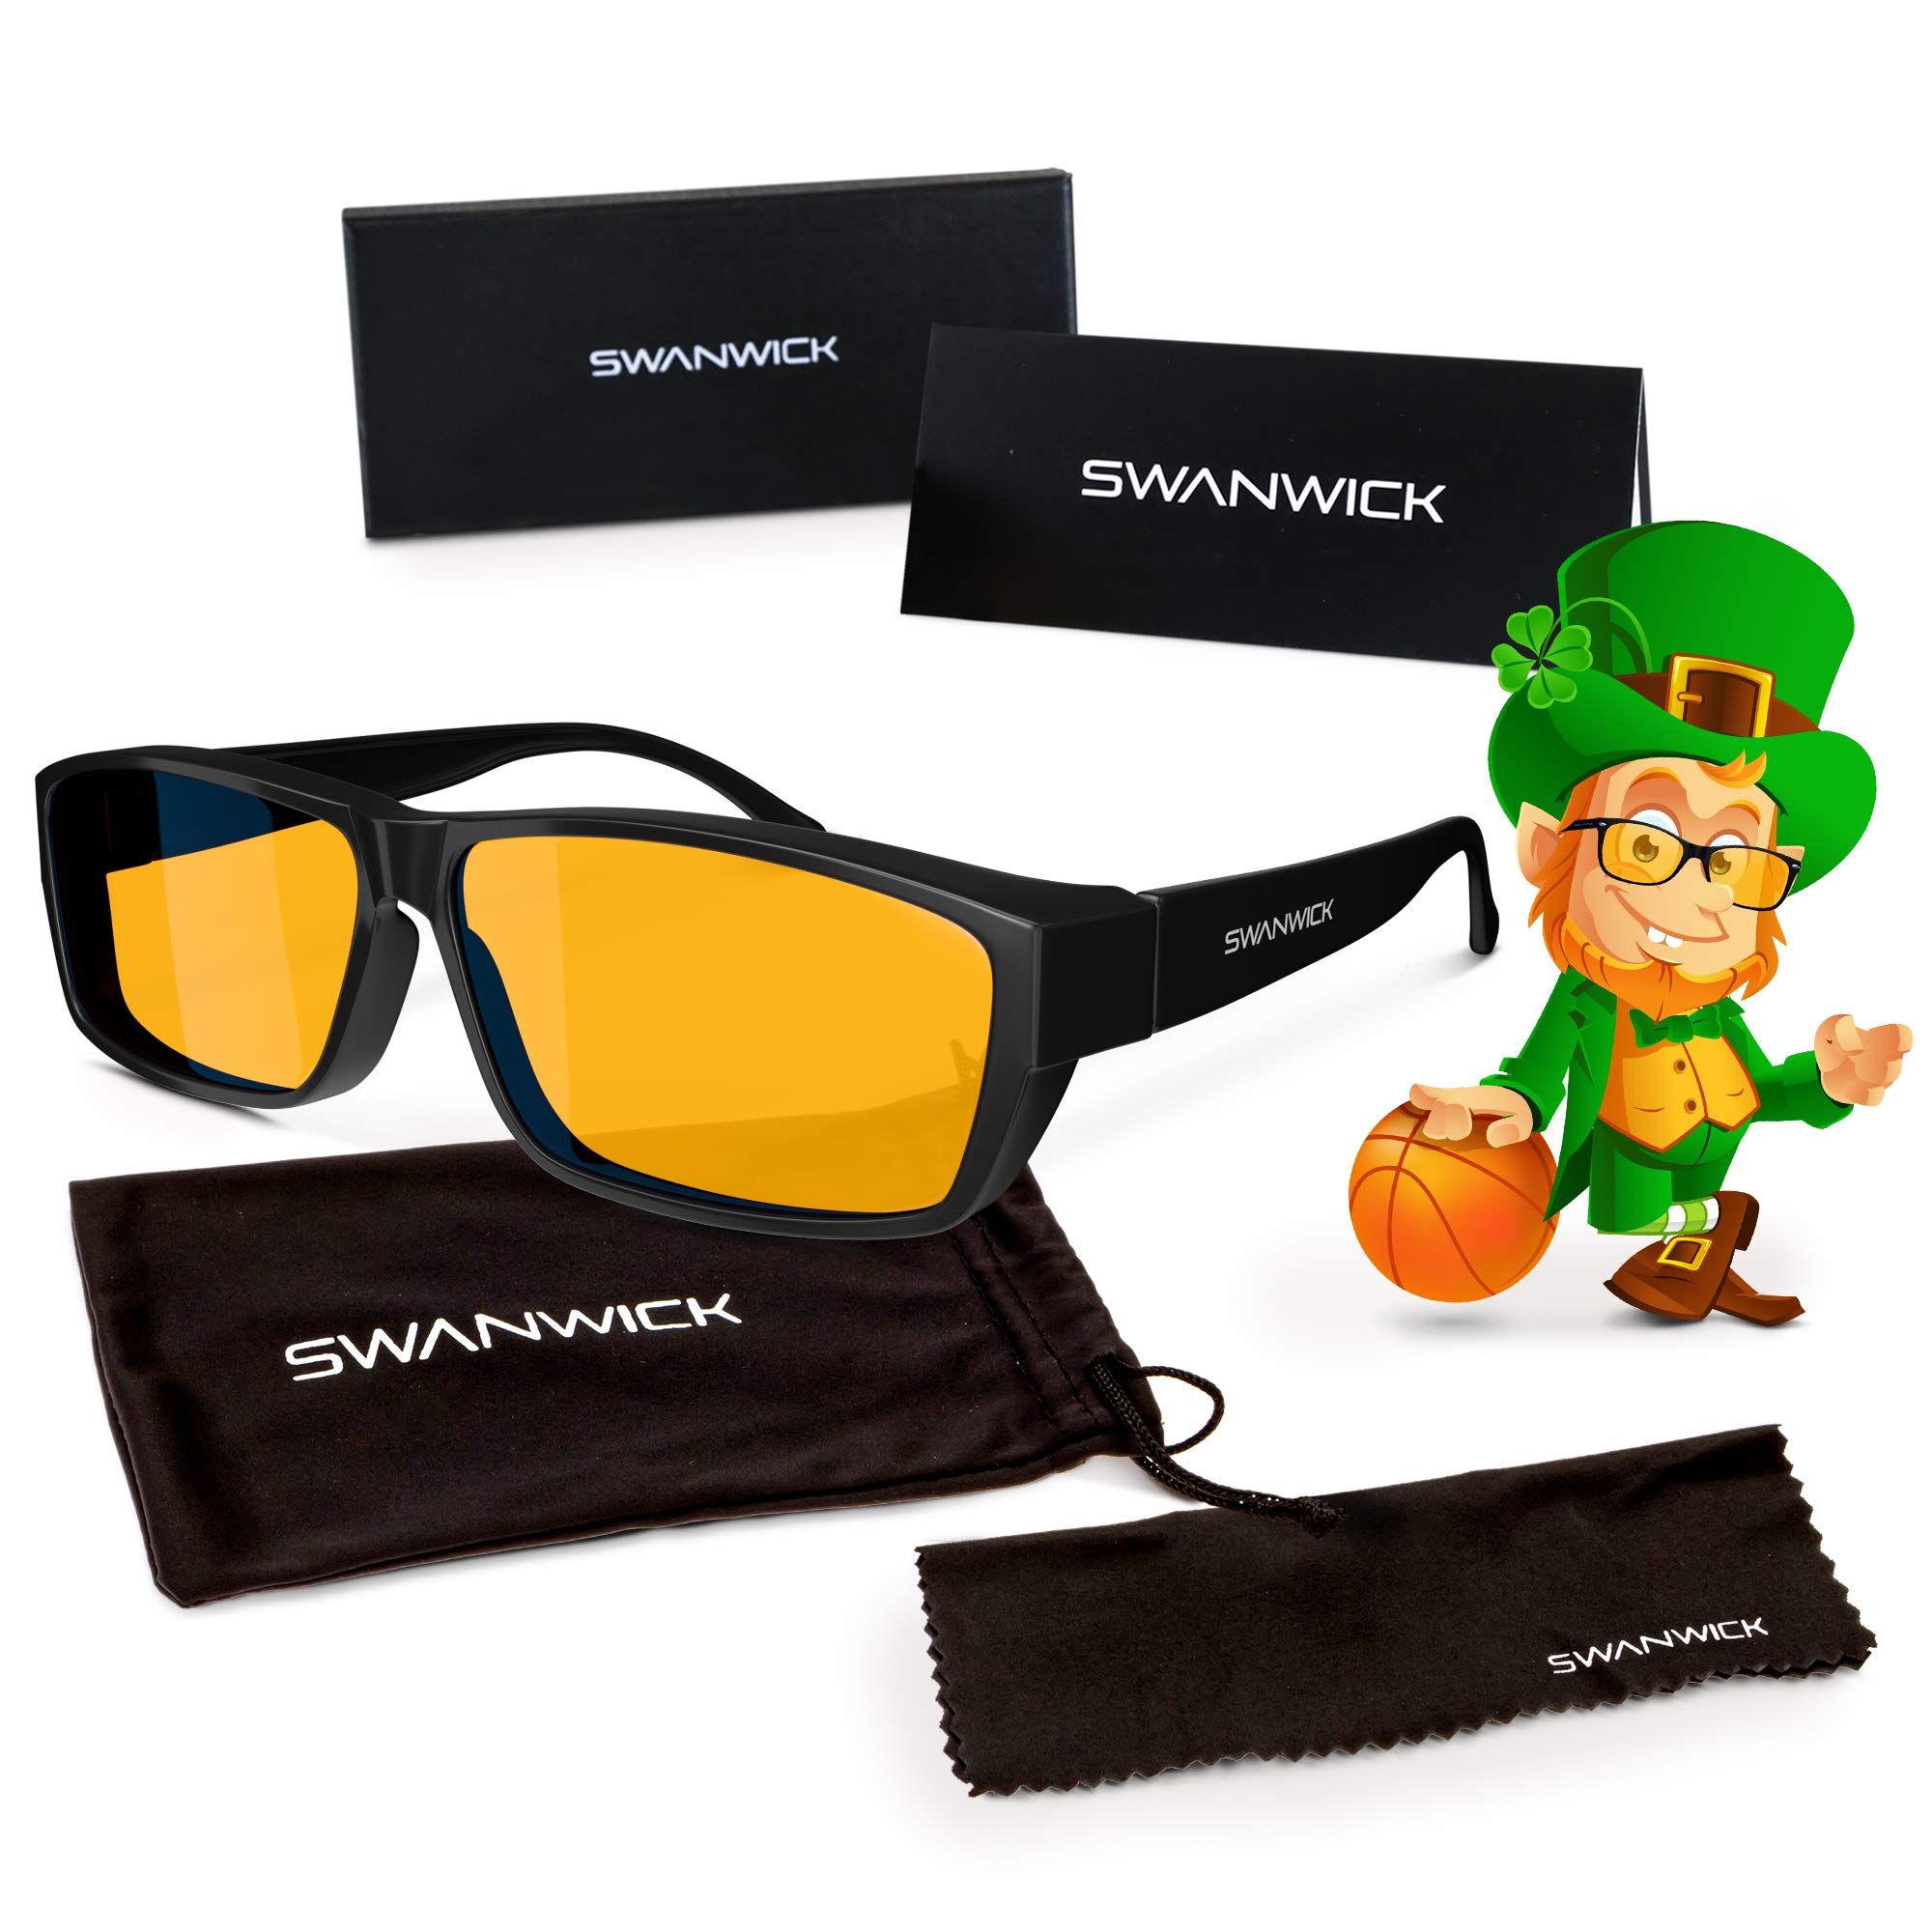 c0ef0182bc Swanwick Sleep Fitover Blue Light Blocking Glasses and Computer Eyewear -  Wear OVER your Prescription Glasses